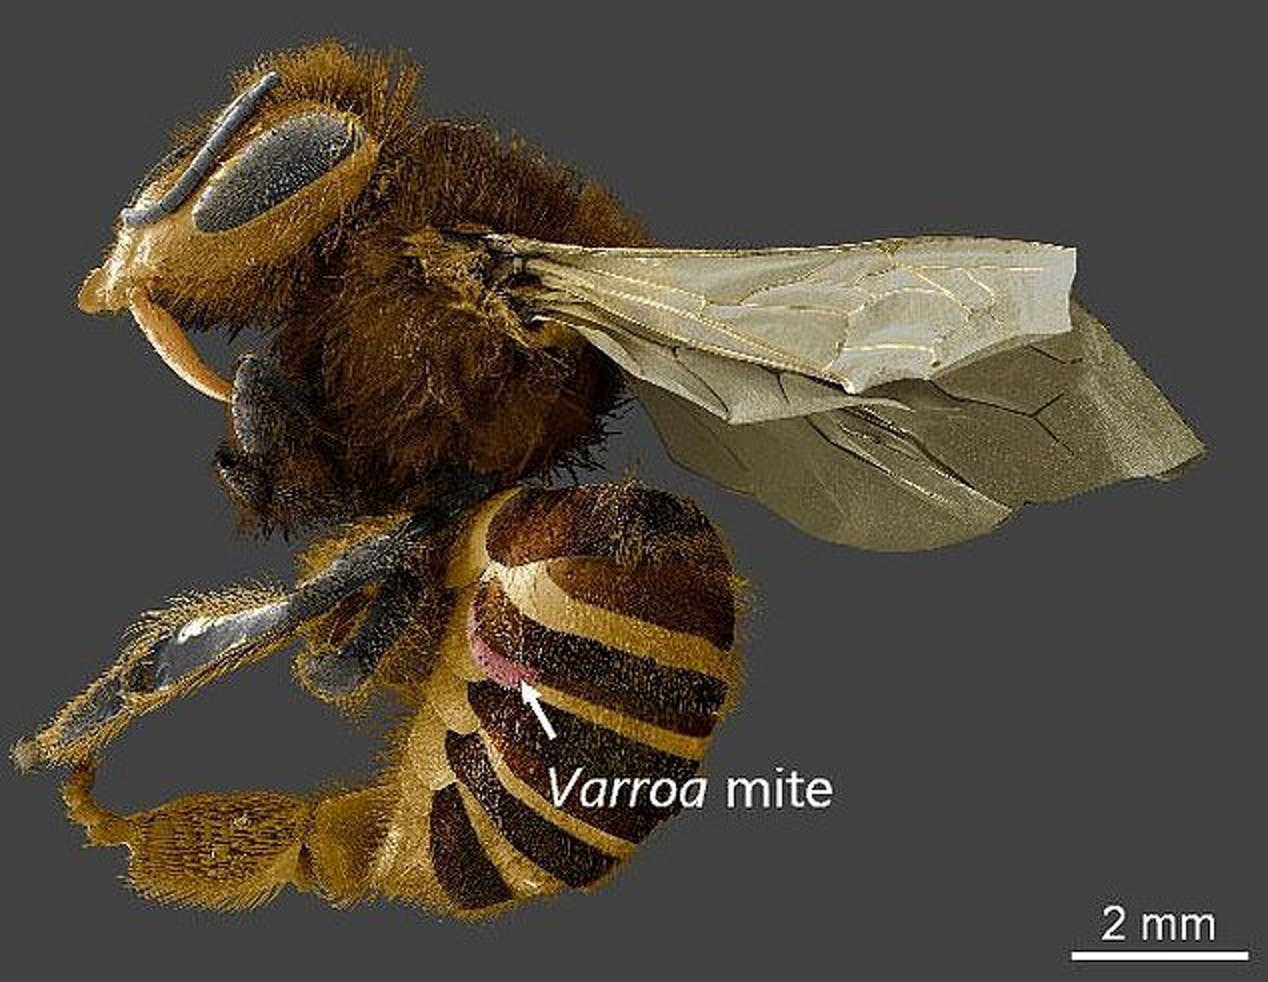 This low-temperature scanning electron microscope image shows a Varroa destructor mite attached to a honeybee.